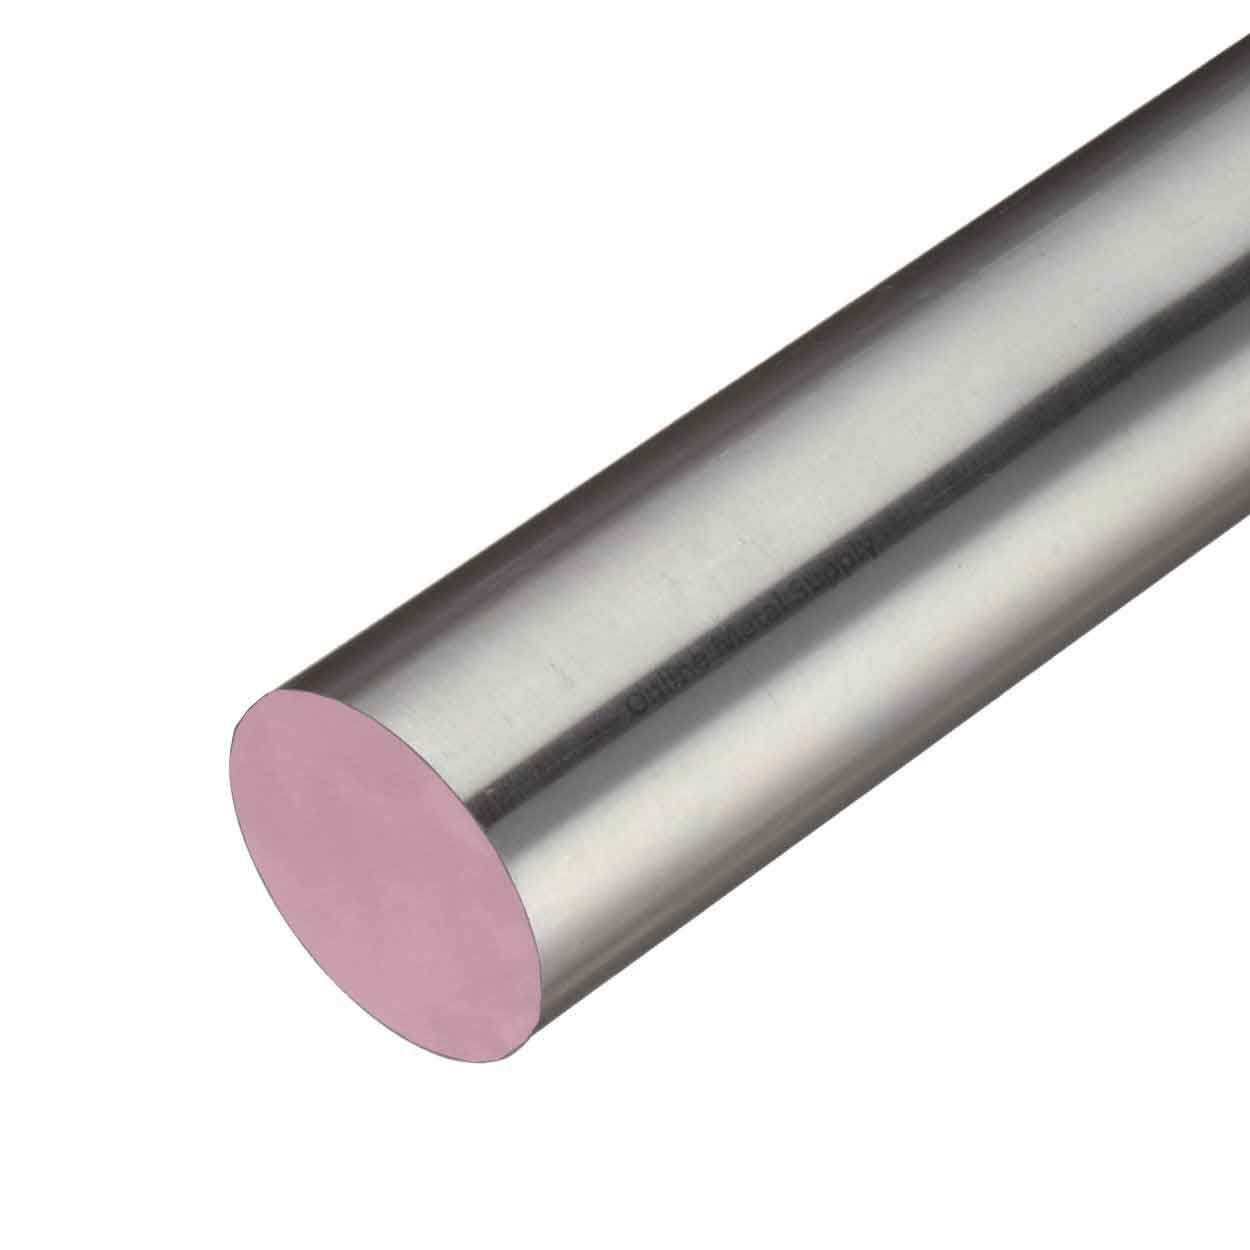 Online Metal Supply 303 Stainless Steel Round Rod 1//2 inch x 24 inches 0.500